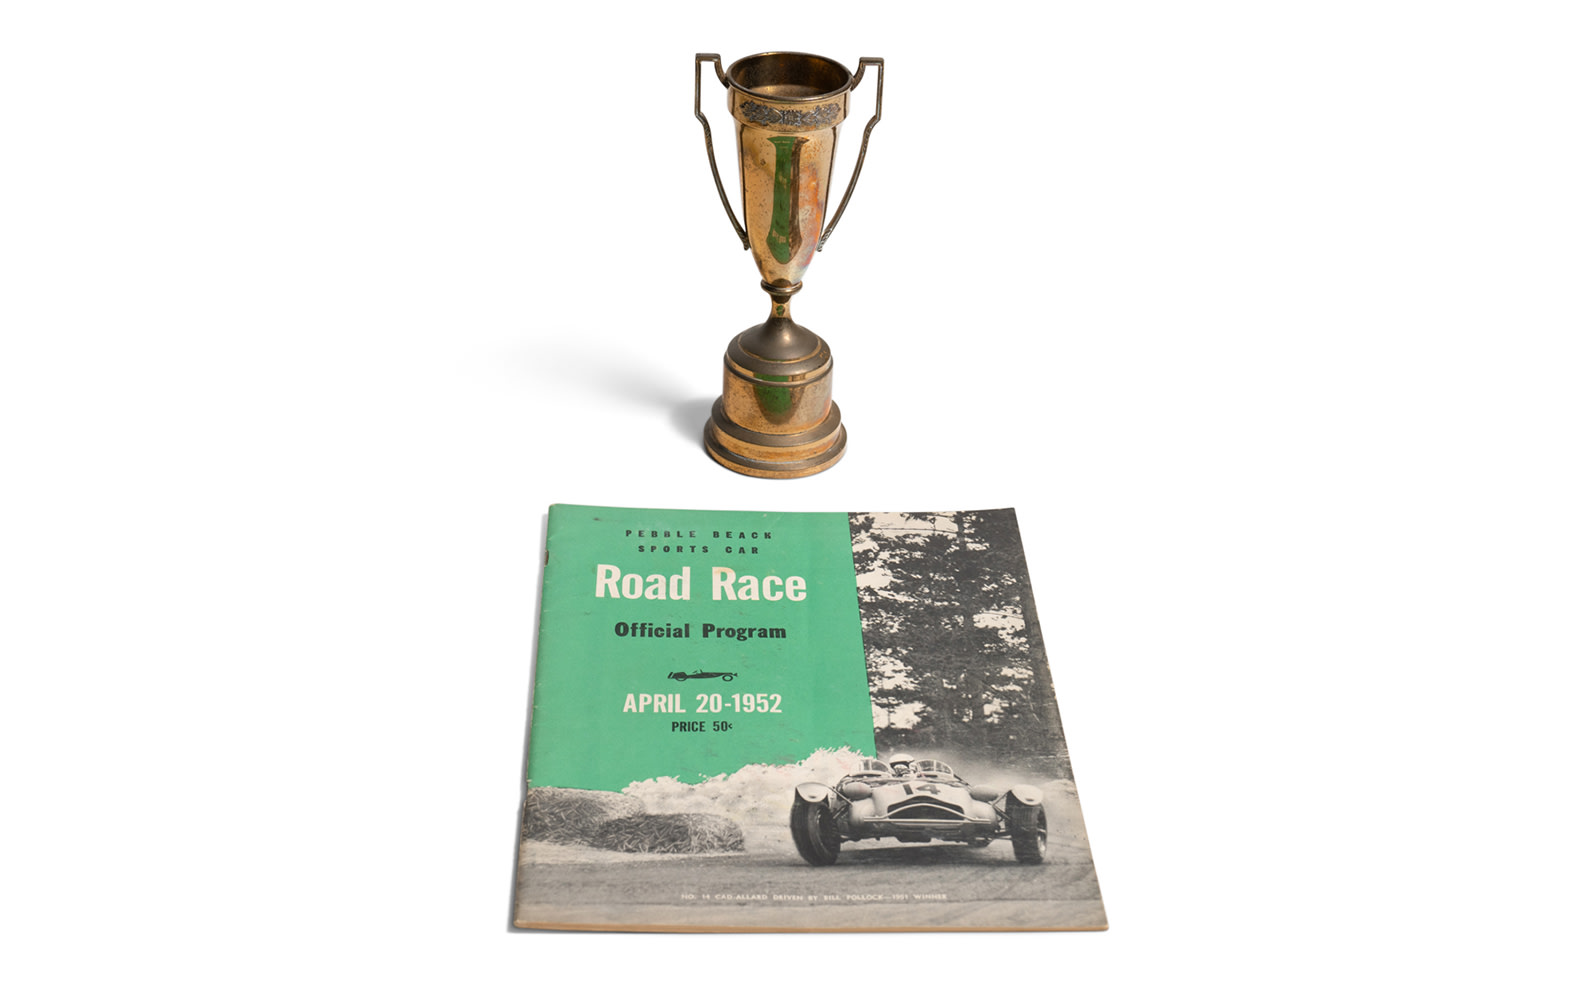 1952 Pebble Beach Road Race Trophy and Official Race Program